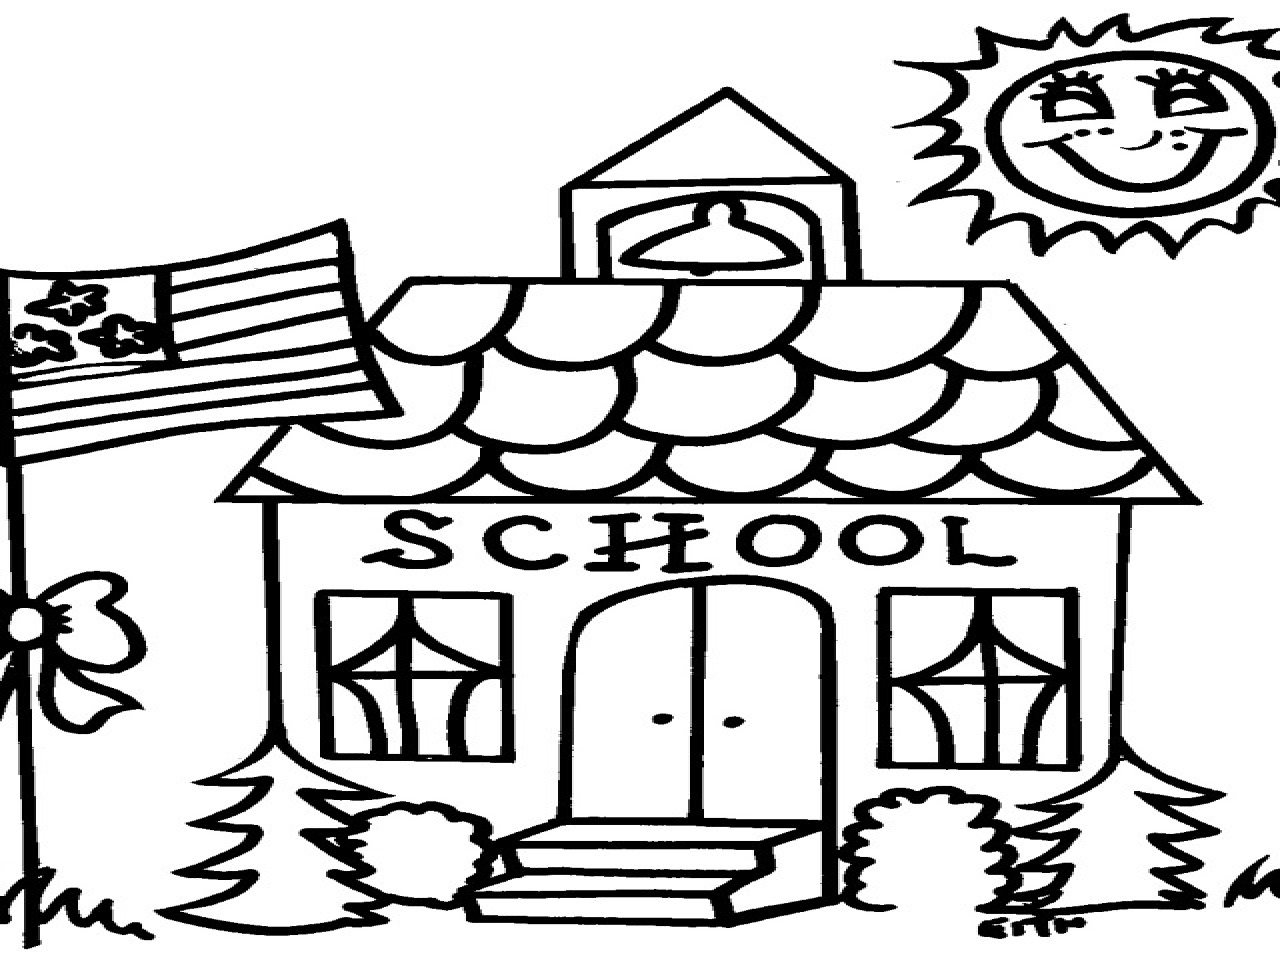 Schoolhouse Coloring Pages Printables School House Page Grig3 Gallery Of School Coloring Pages with 35 Coloring Page A School Small School Collection